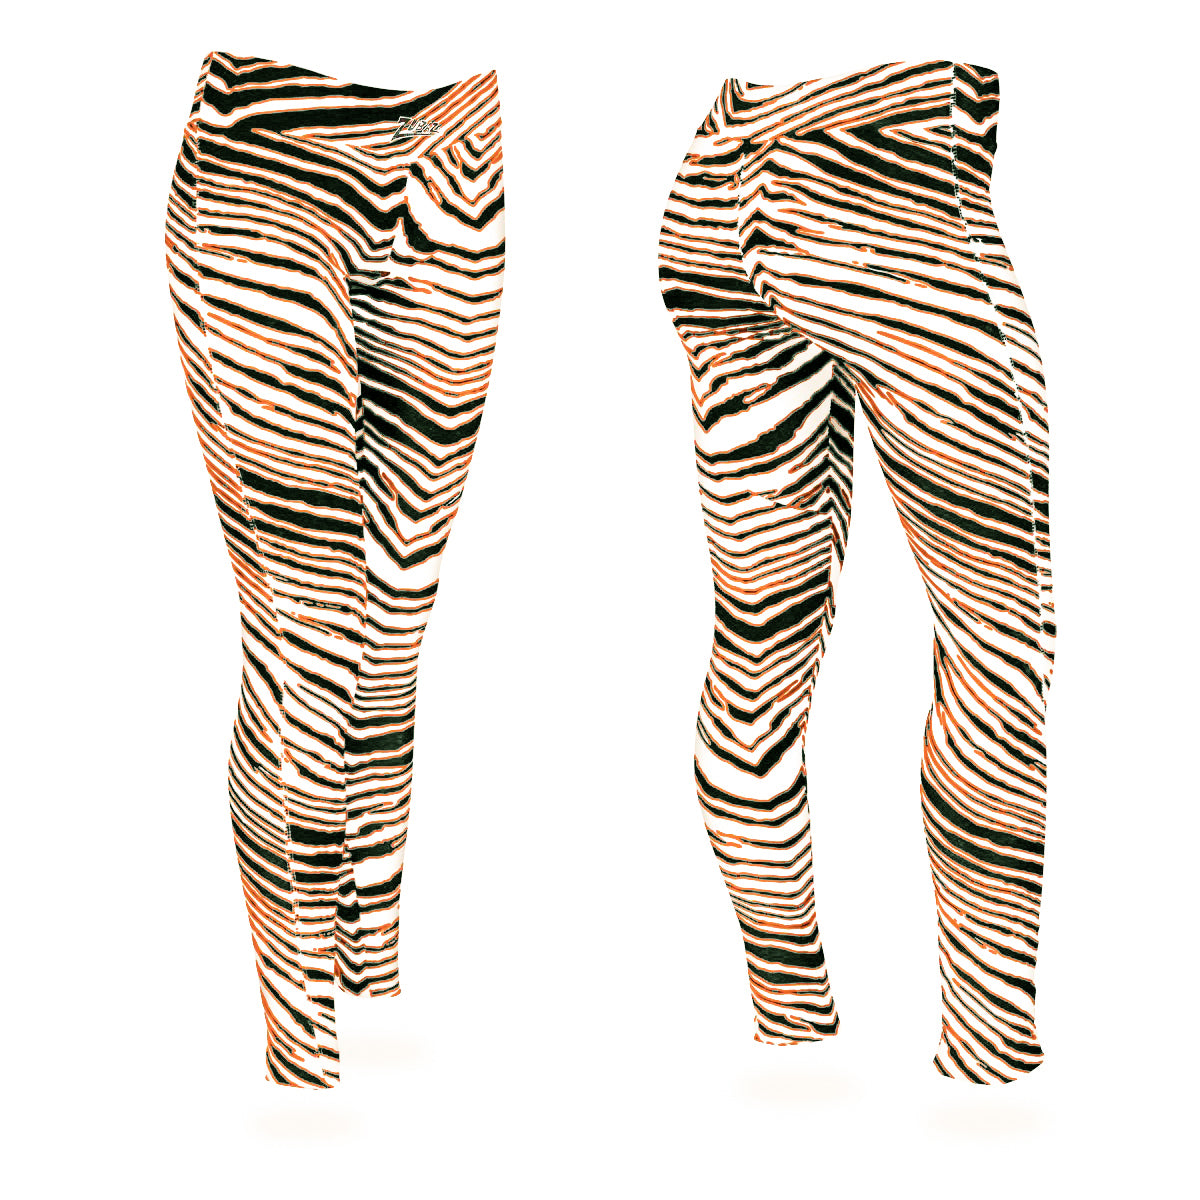 brandsego - Zubaz Zebra Print Slim Fit Trousers For Ladies-Orange-Green-NA9251